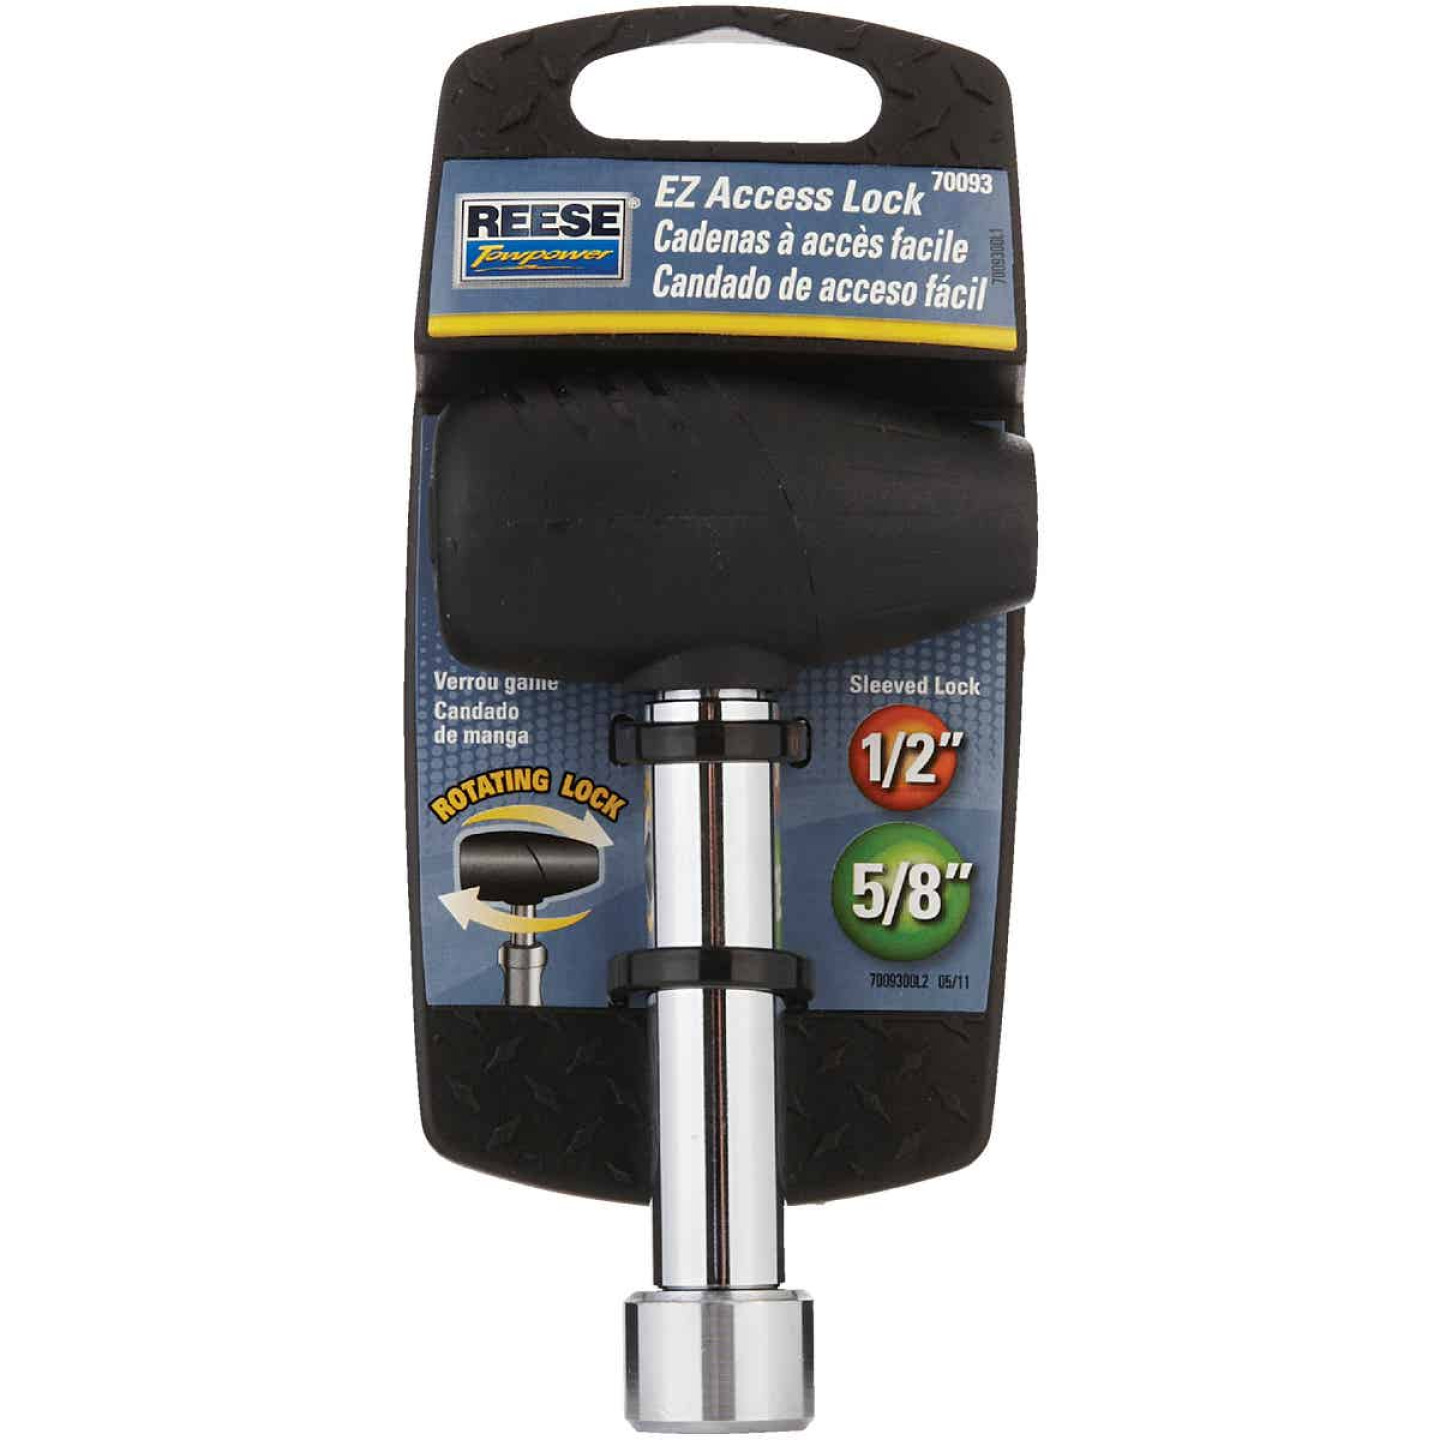 Reese Towpower Easy Access Chrome-Plated 1/2 In. & 5/8 In. Coupler Lock Image 2